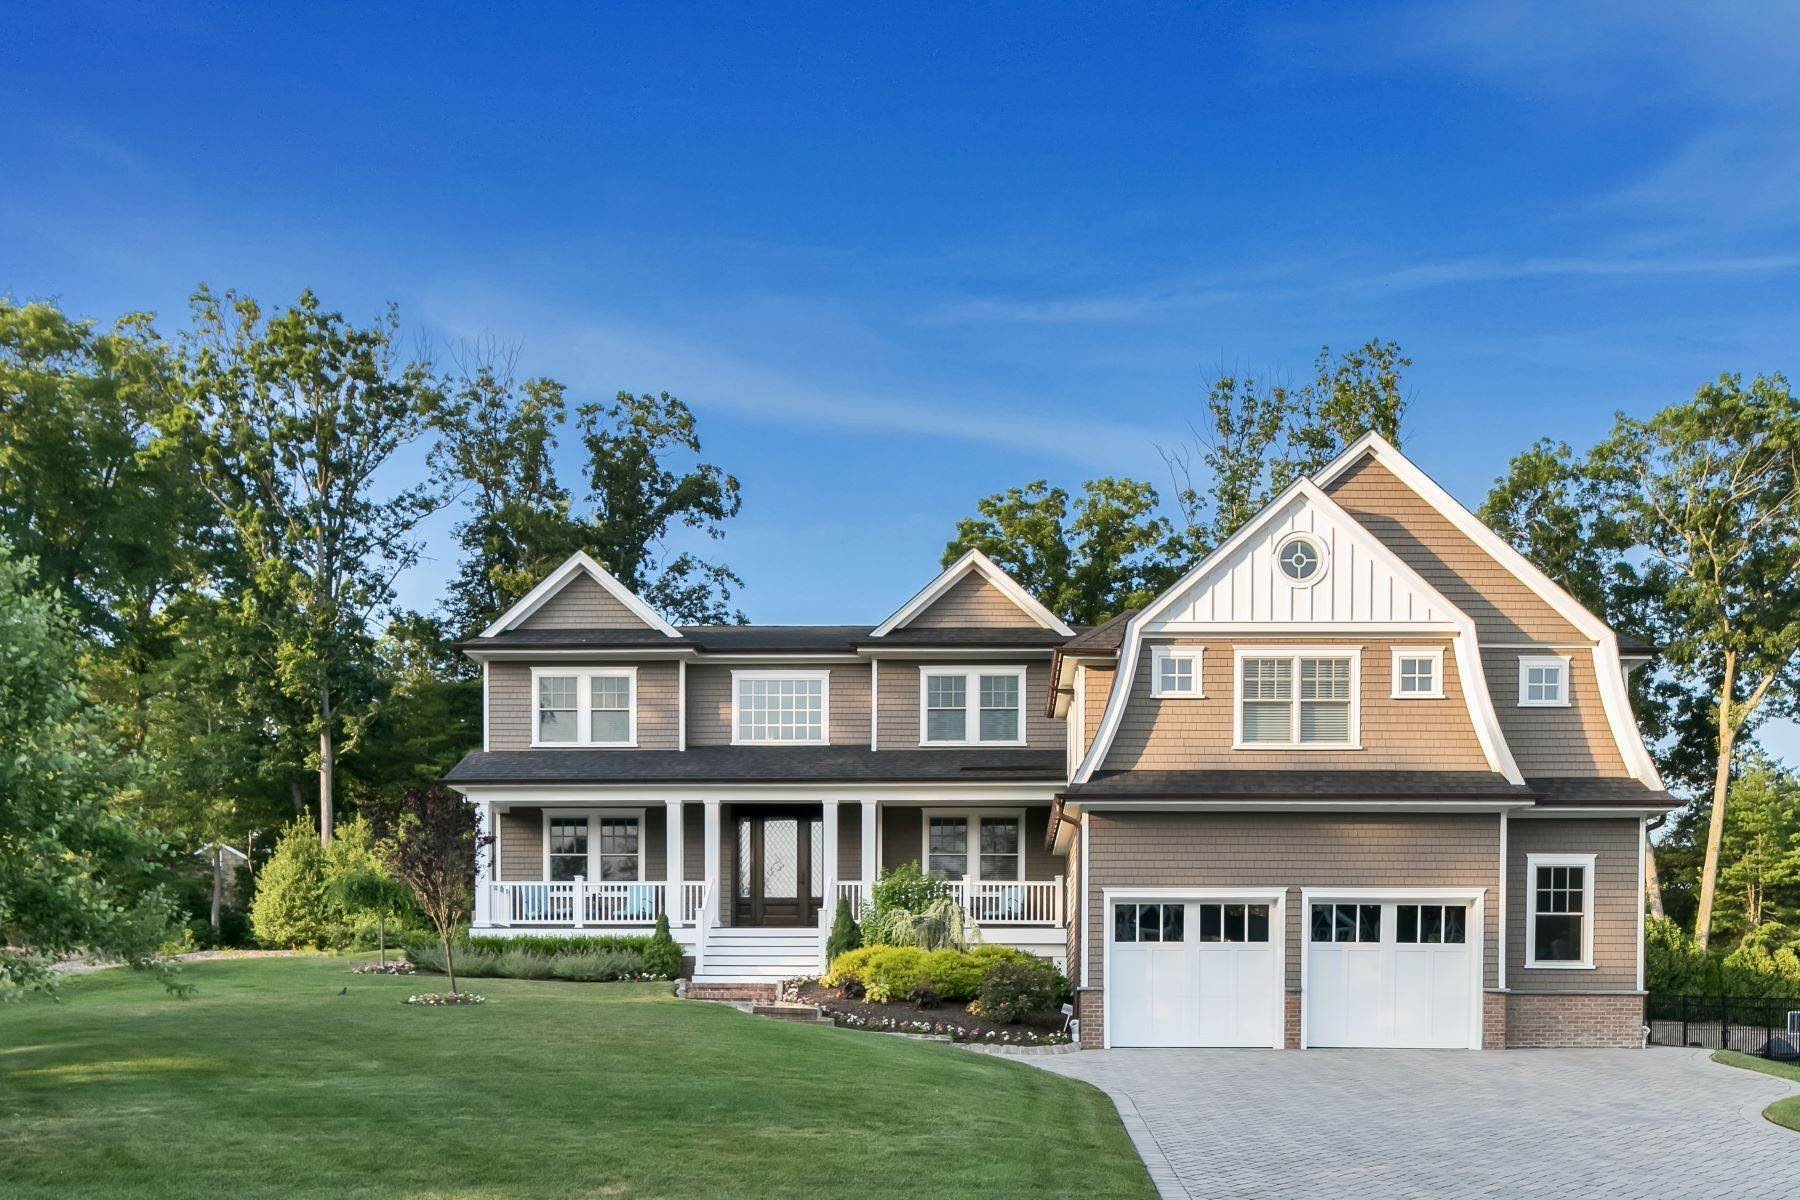 Single Family Homes for Sale at Simply Stunning 13 N Tamarack Drive Brielle, New Jersey 08730 United States